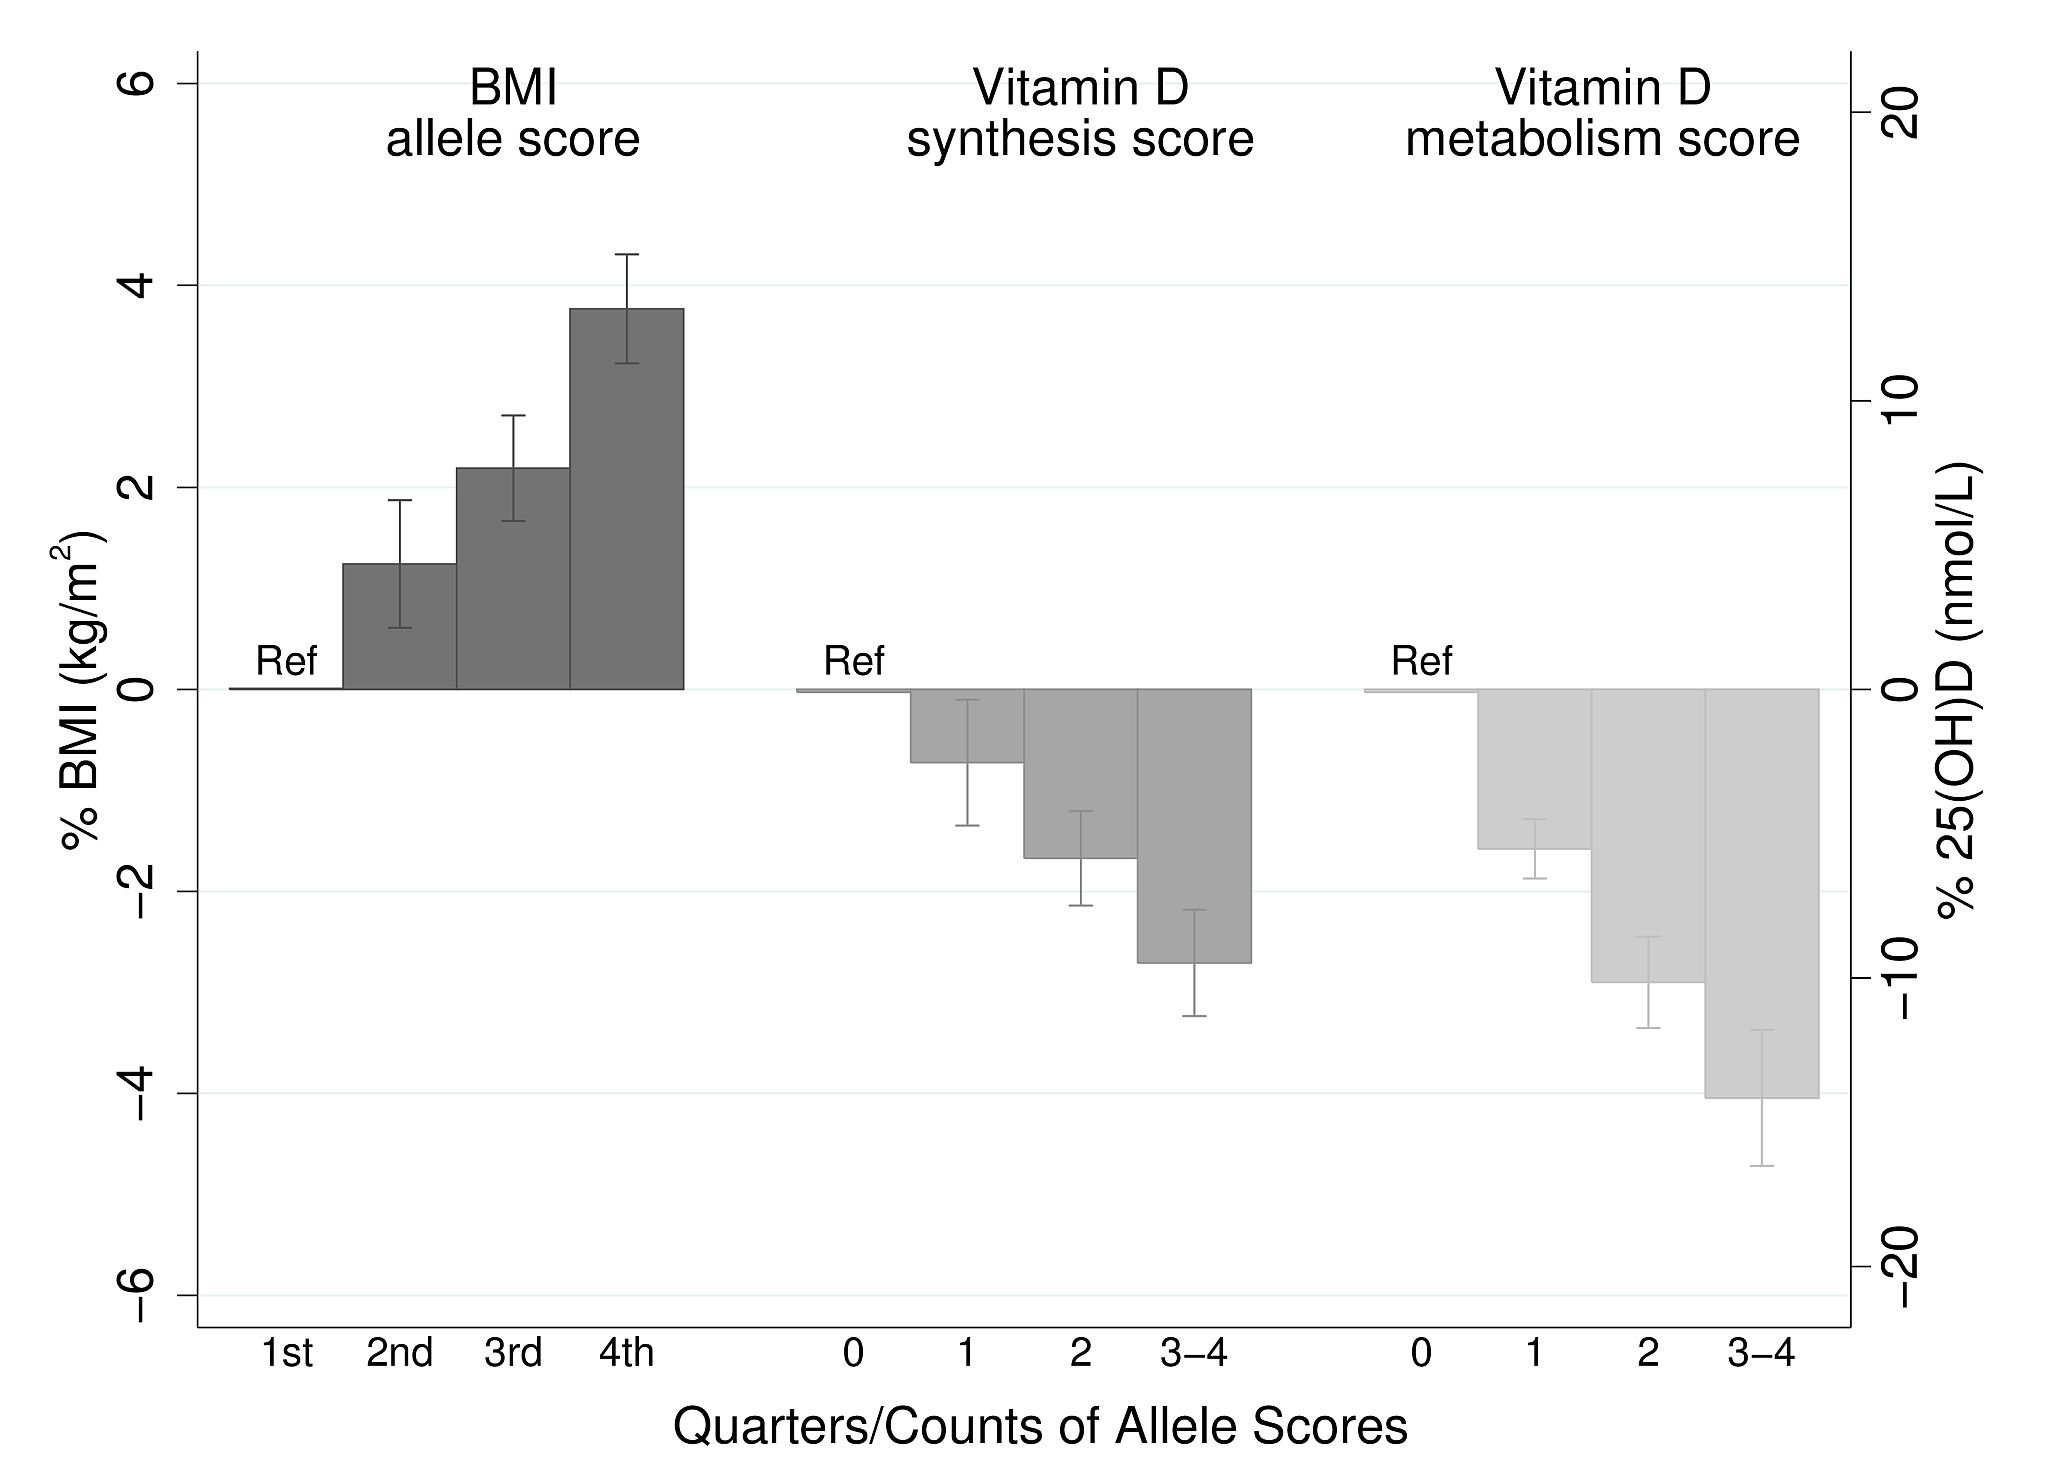 Meta-analysis of the BMI allele score association with BMI (<i>n</i>=32,391), and the vitamin D synthesis (<i>n</i>=35,873) and metabolism (<i>n</i>=38,191) allele score association with 25(OH)D.